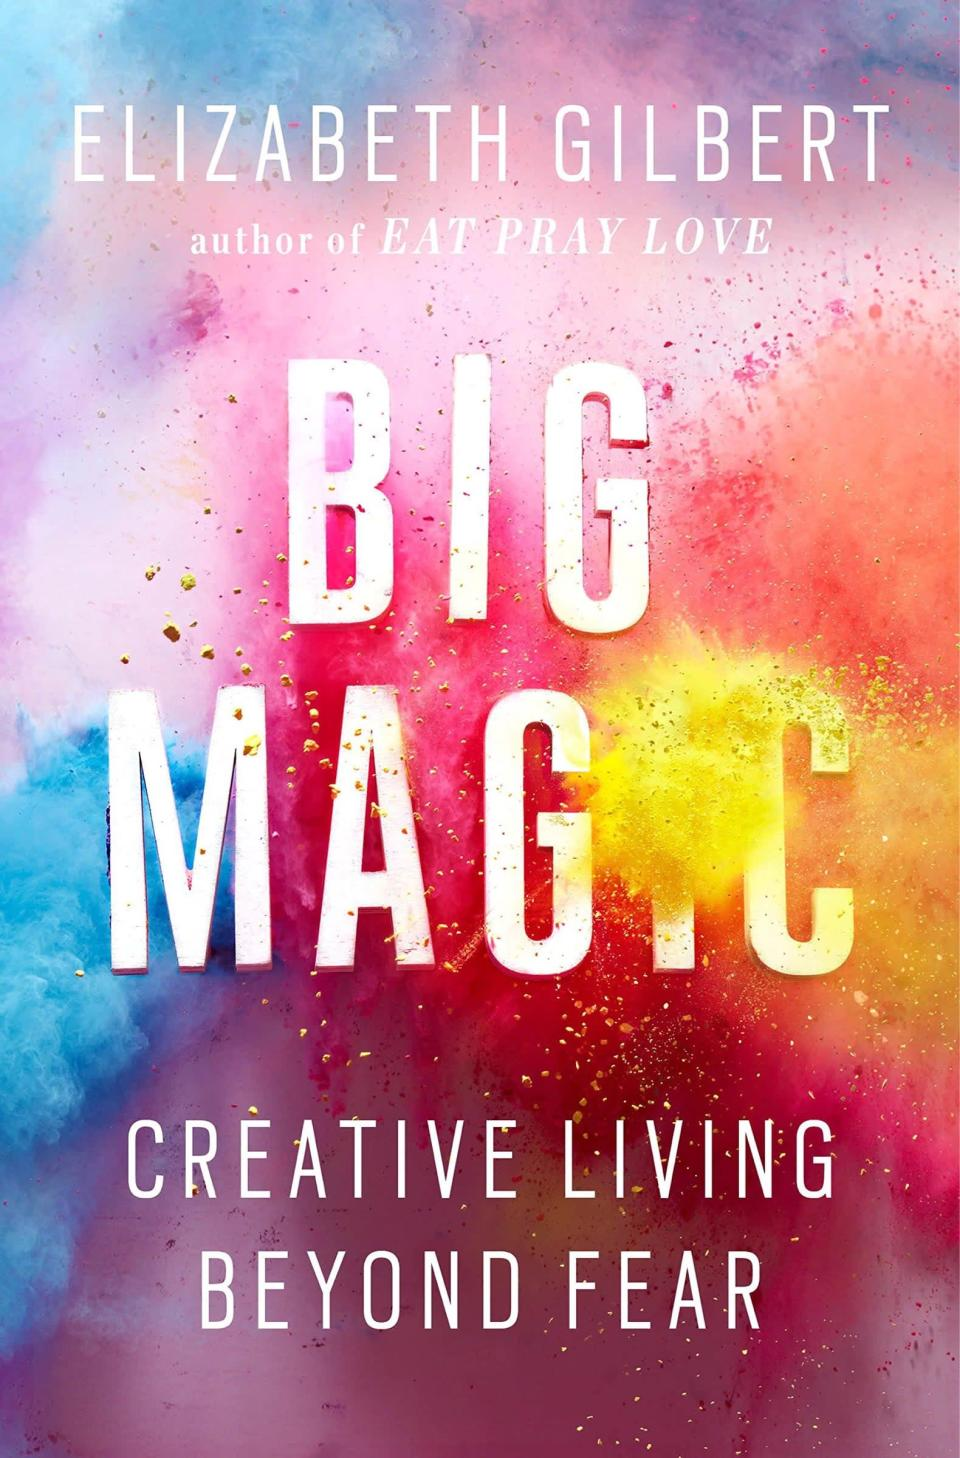 <p><strong><span>Big Magic</span></strong> ($9) is a light read for every creative, artist, or soul that's struggled with being able to pursue their calling. Known for her bestseller <strong><span>Eat Pray Love</span></strong>, Elizabeth Gilbert uses this book to capture how you can accomplish any creative feat. From overcoming fear, developing comfort with the unknown and other useful creative habits - <strong>Big Magic</strong> is an honest guide filled with encouragement that will leave each reader with a little something different.</p>